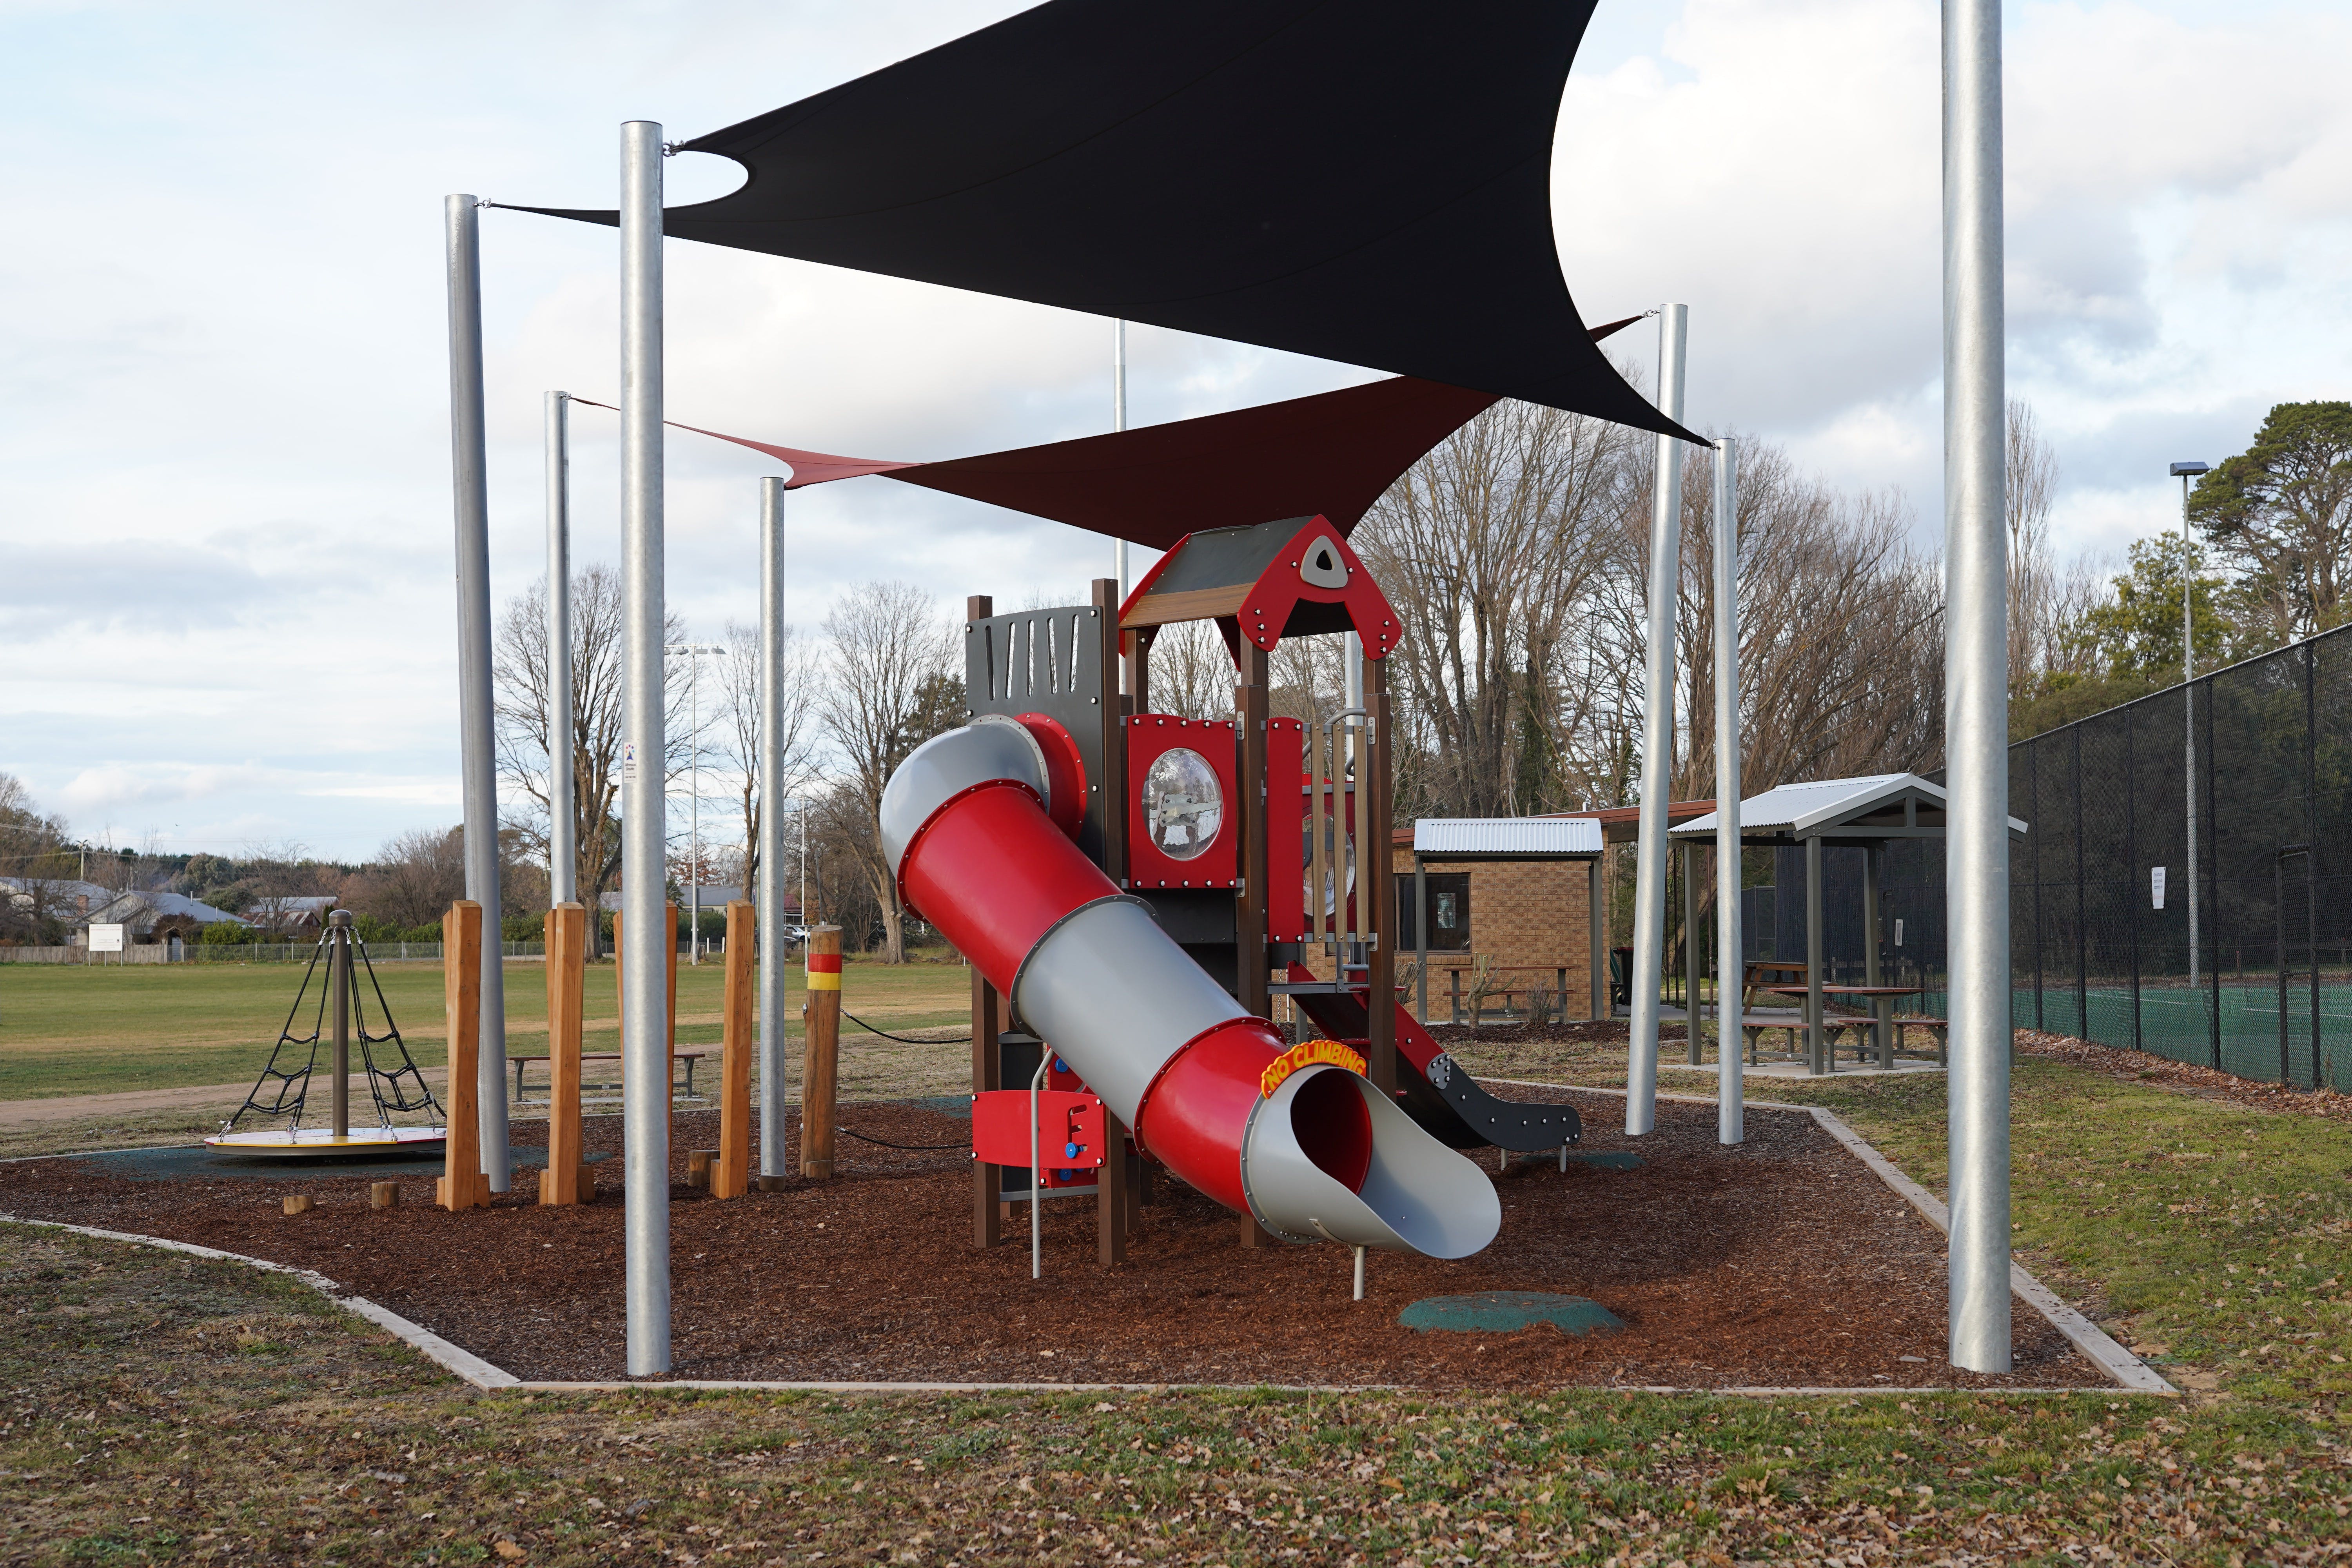 Braidwood Recreation Grounds and Playground - Accommodation Melbourne